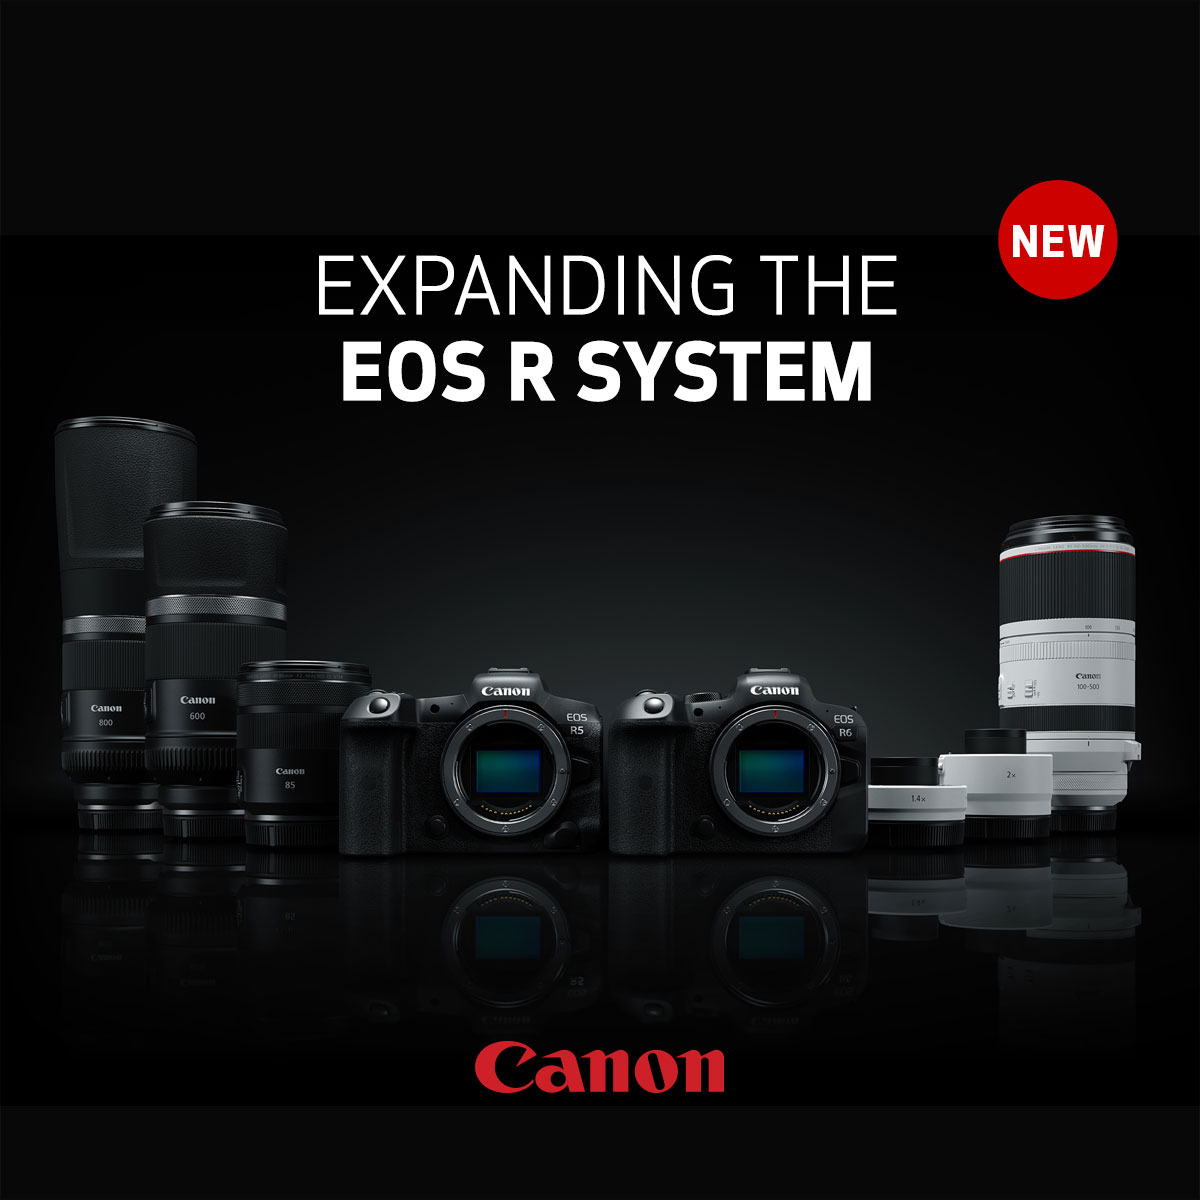 Expanding the EOS R System by Canon - EOS R5 & R6